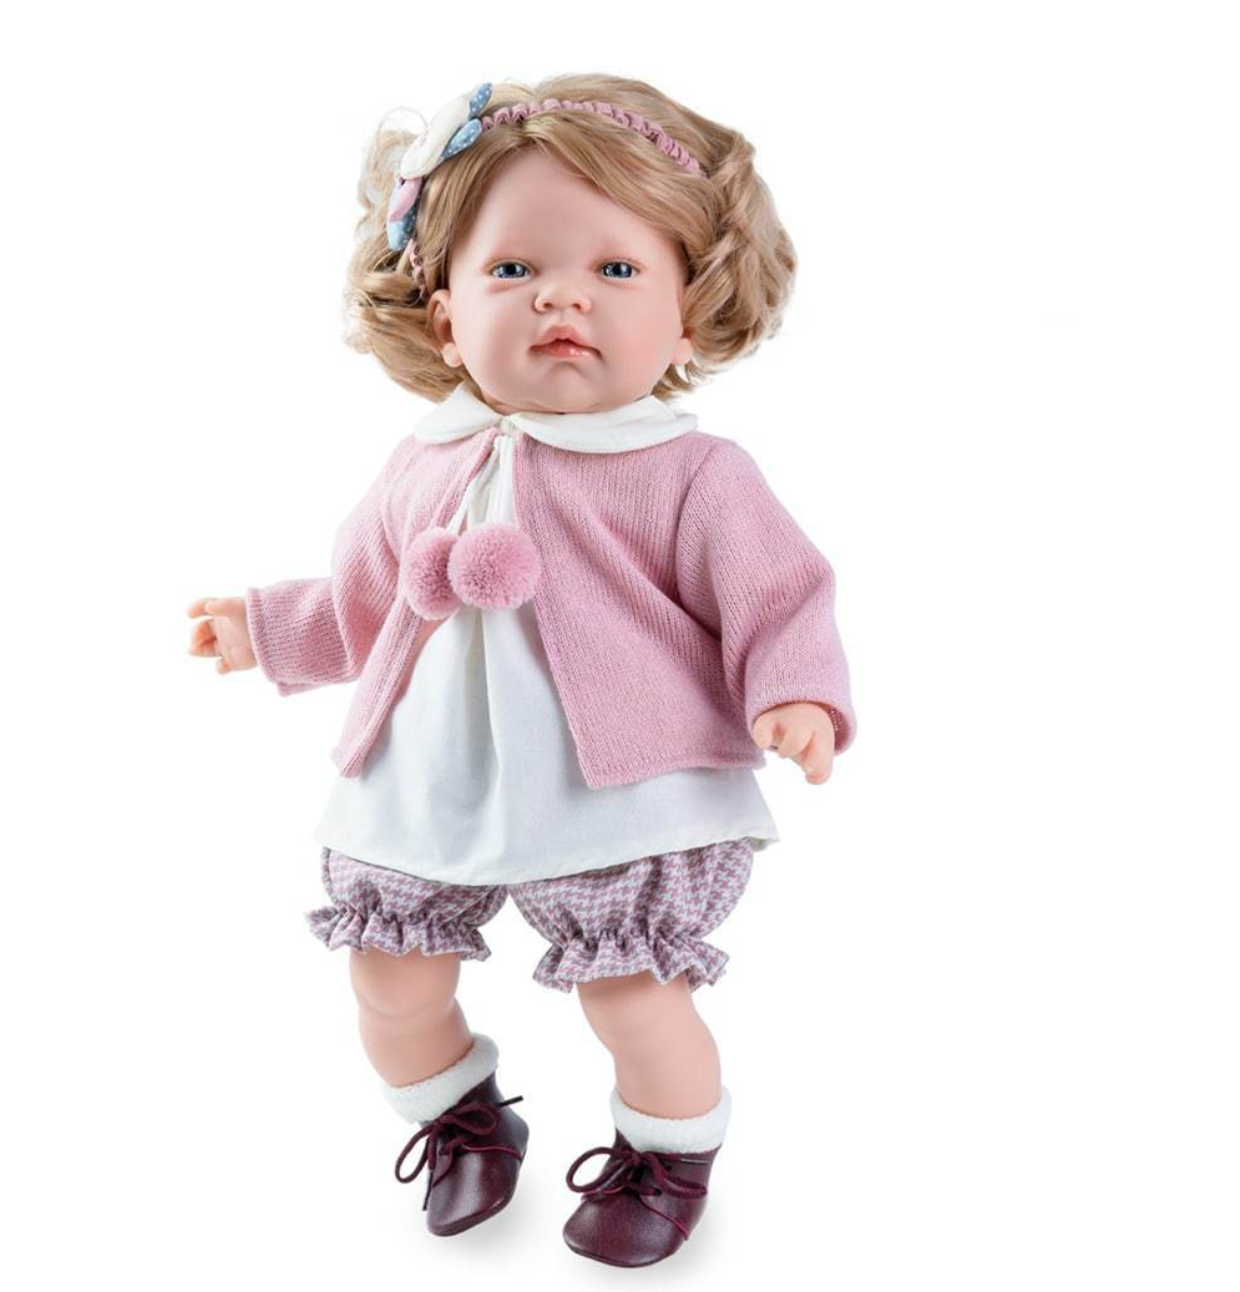 D'Nines Spanish Doll - Celia #spanishdolls Our super cute Spanish Doll - Celia - is looking for her forever home. At 45cm tall, she is the perfect keepsake. #spanishdolls